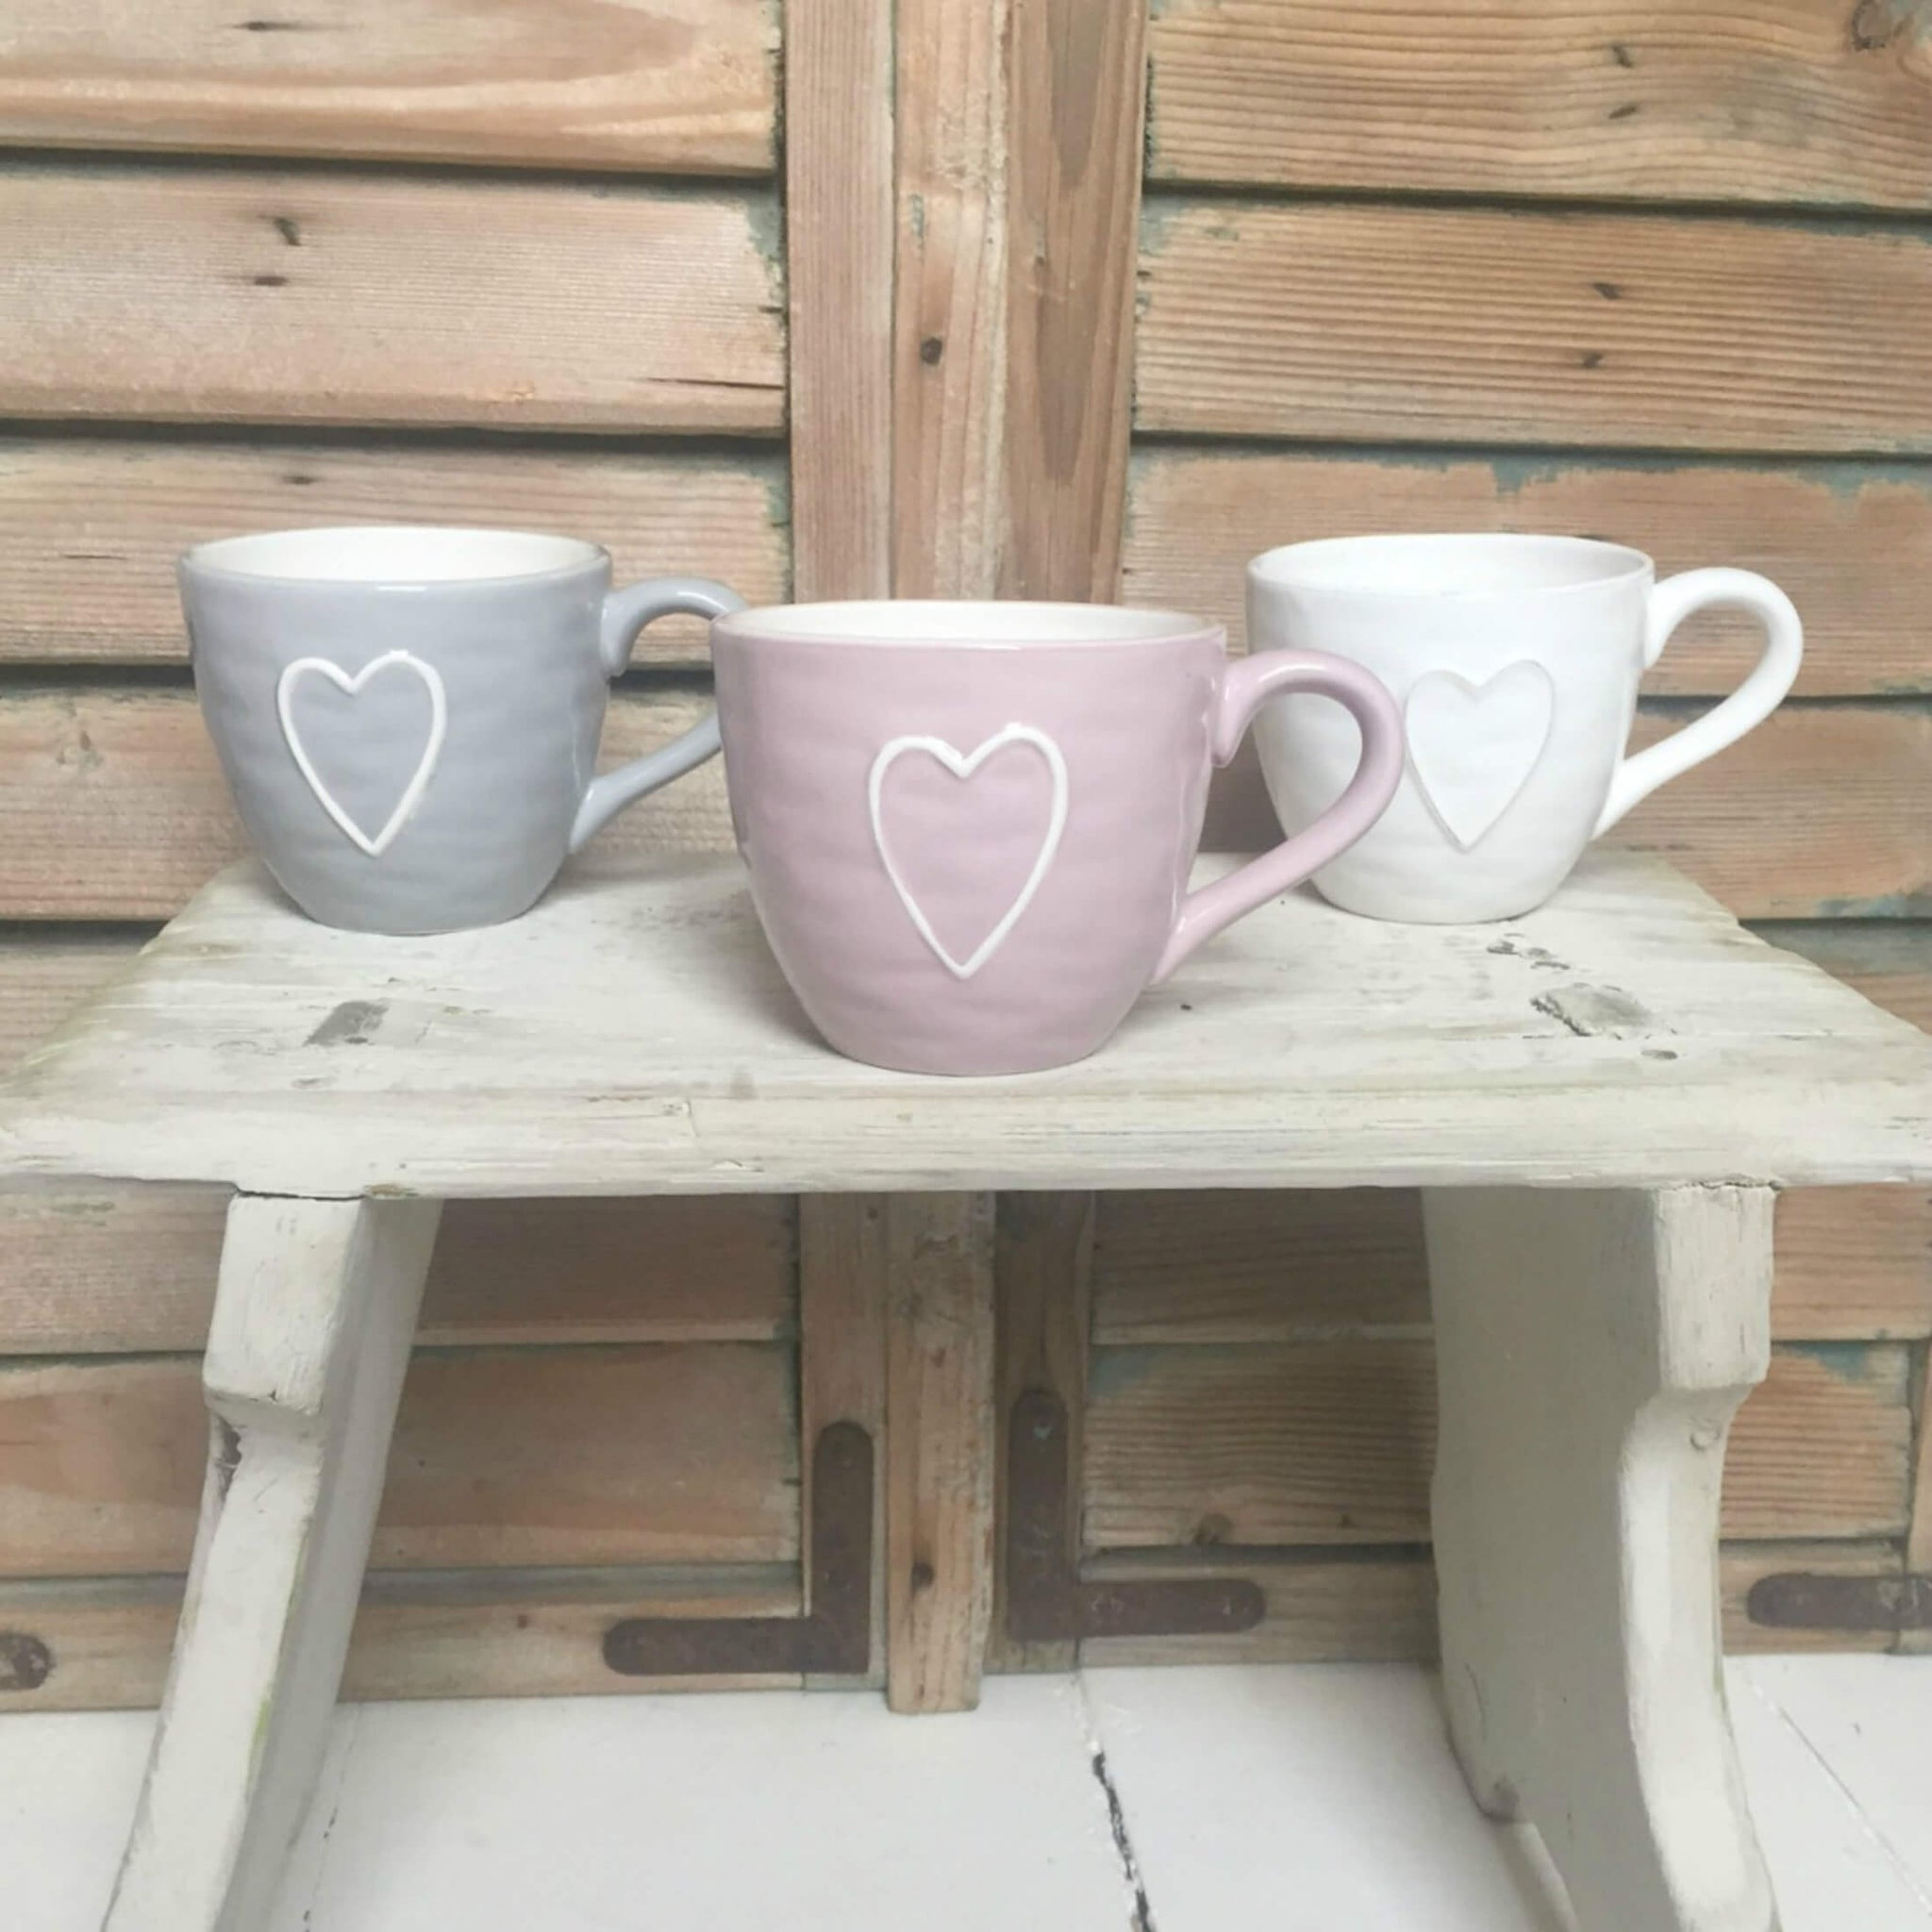 Heart Mugs - Dales Country Interiors